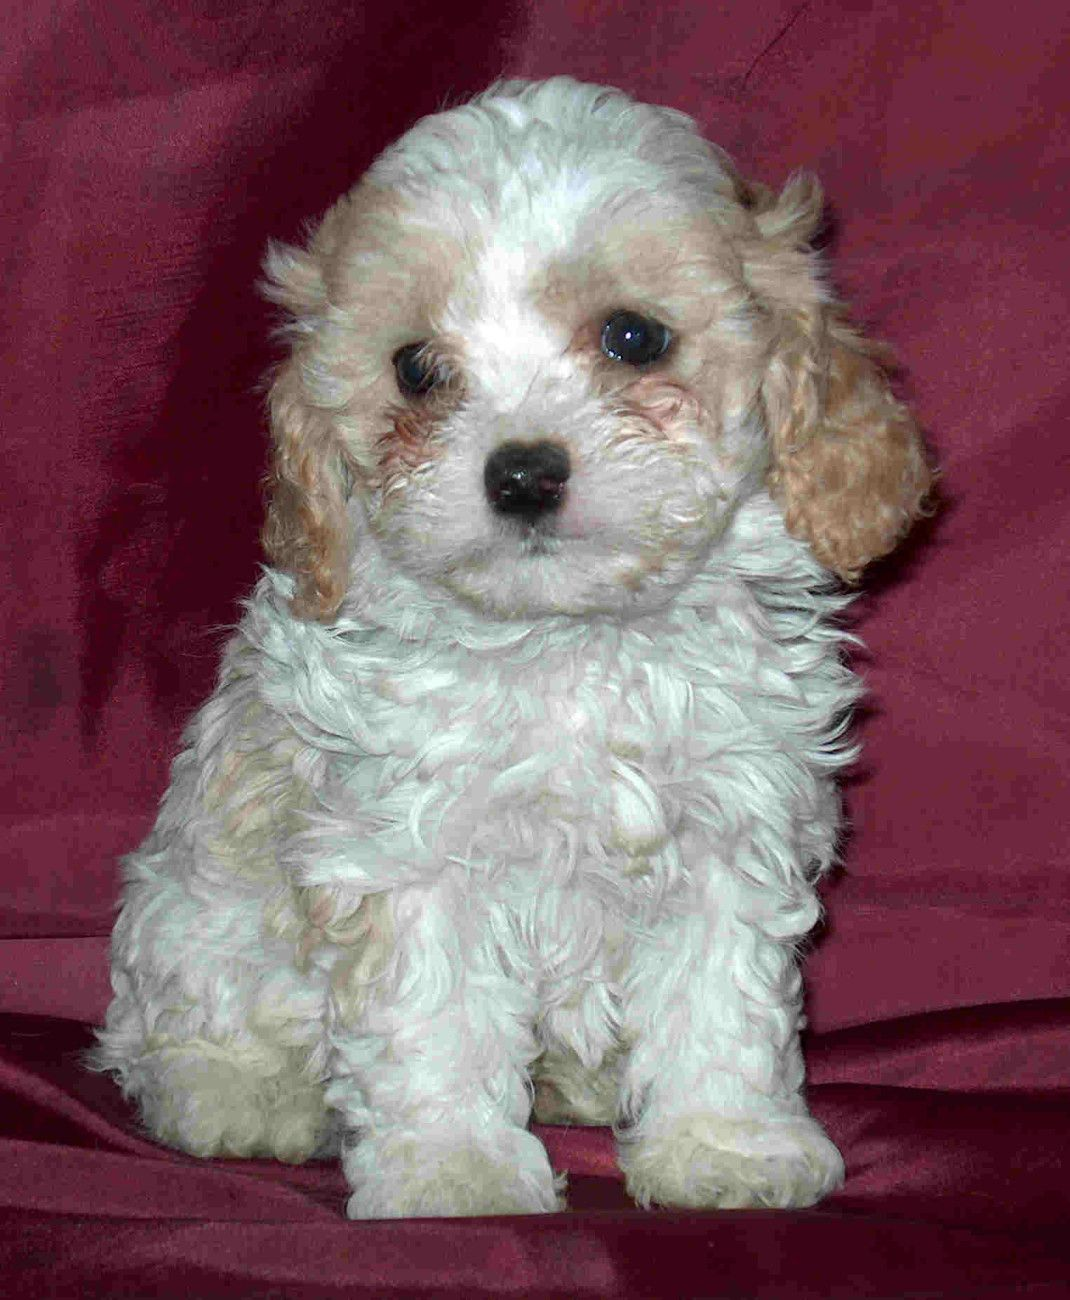 Cavapoo Puppy Oh my gosh I so want one!! so cute